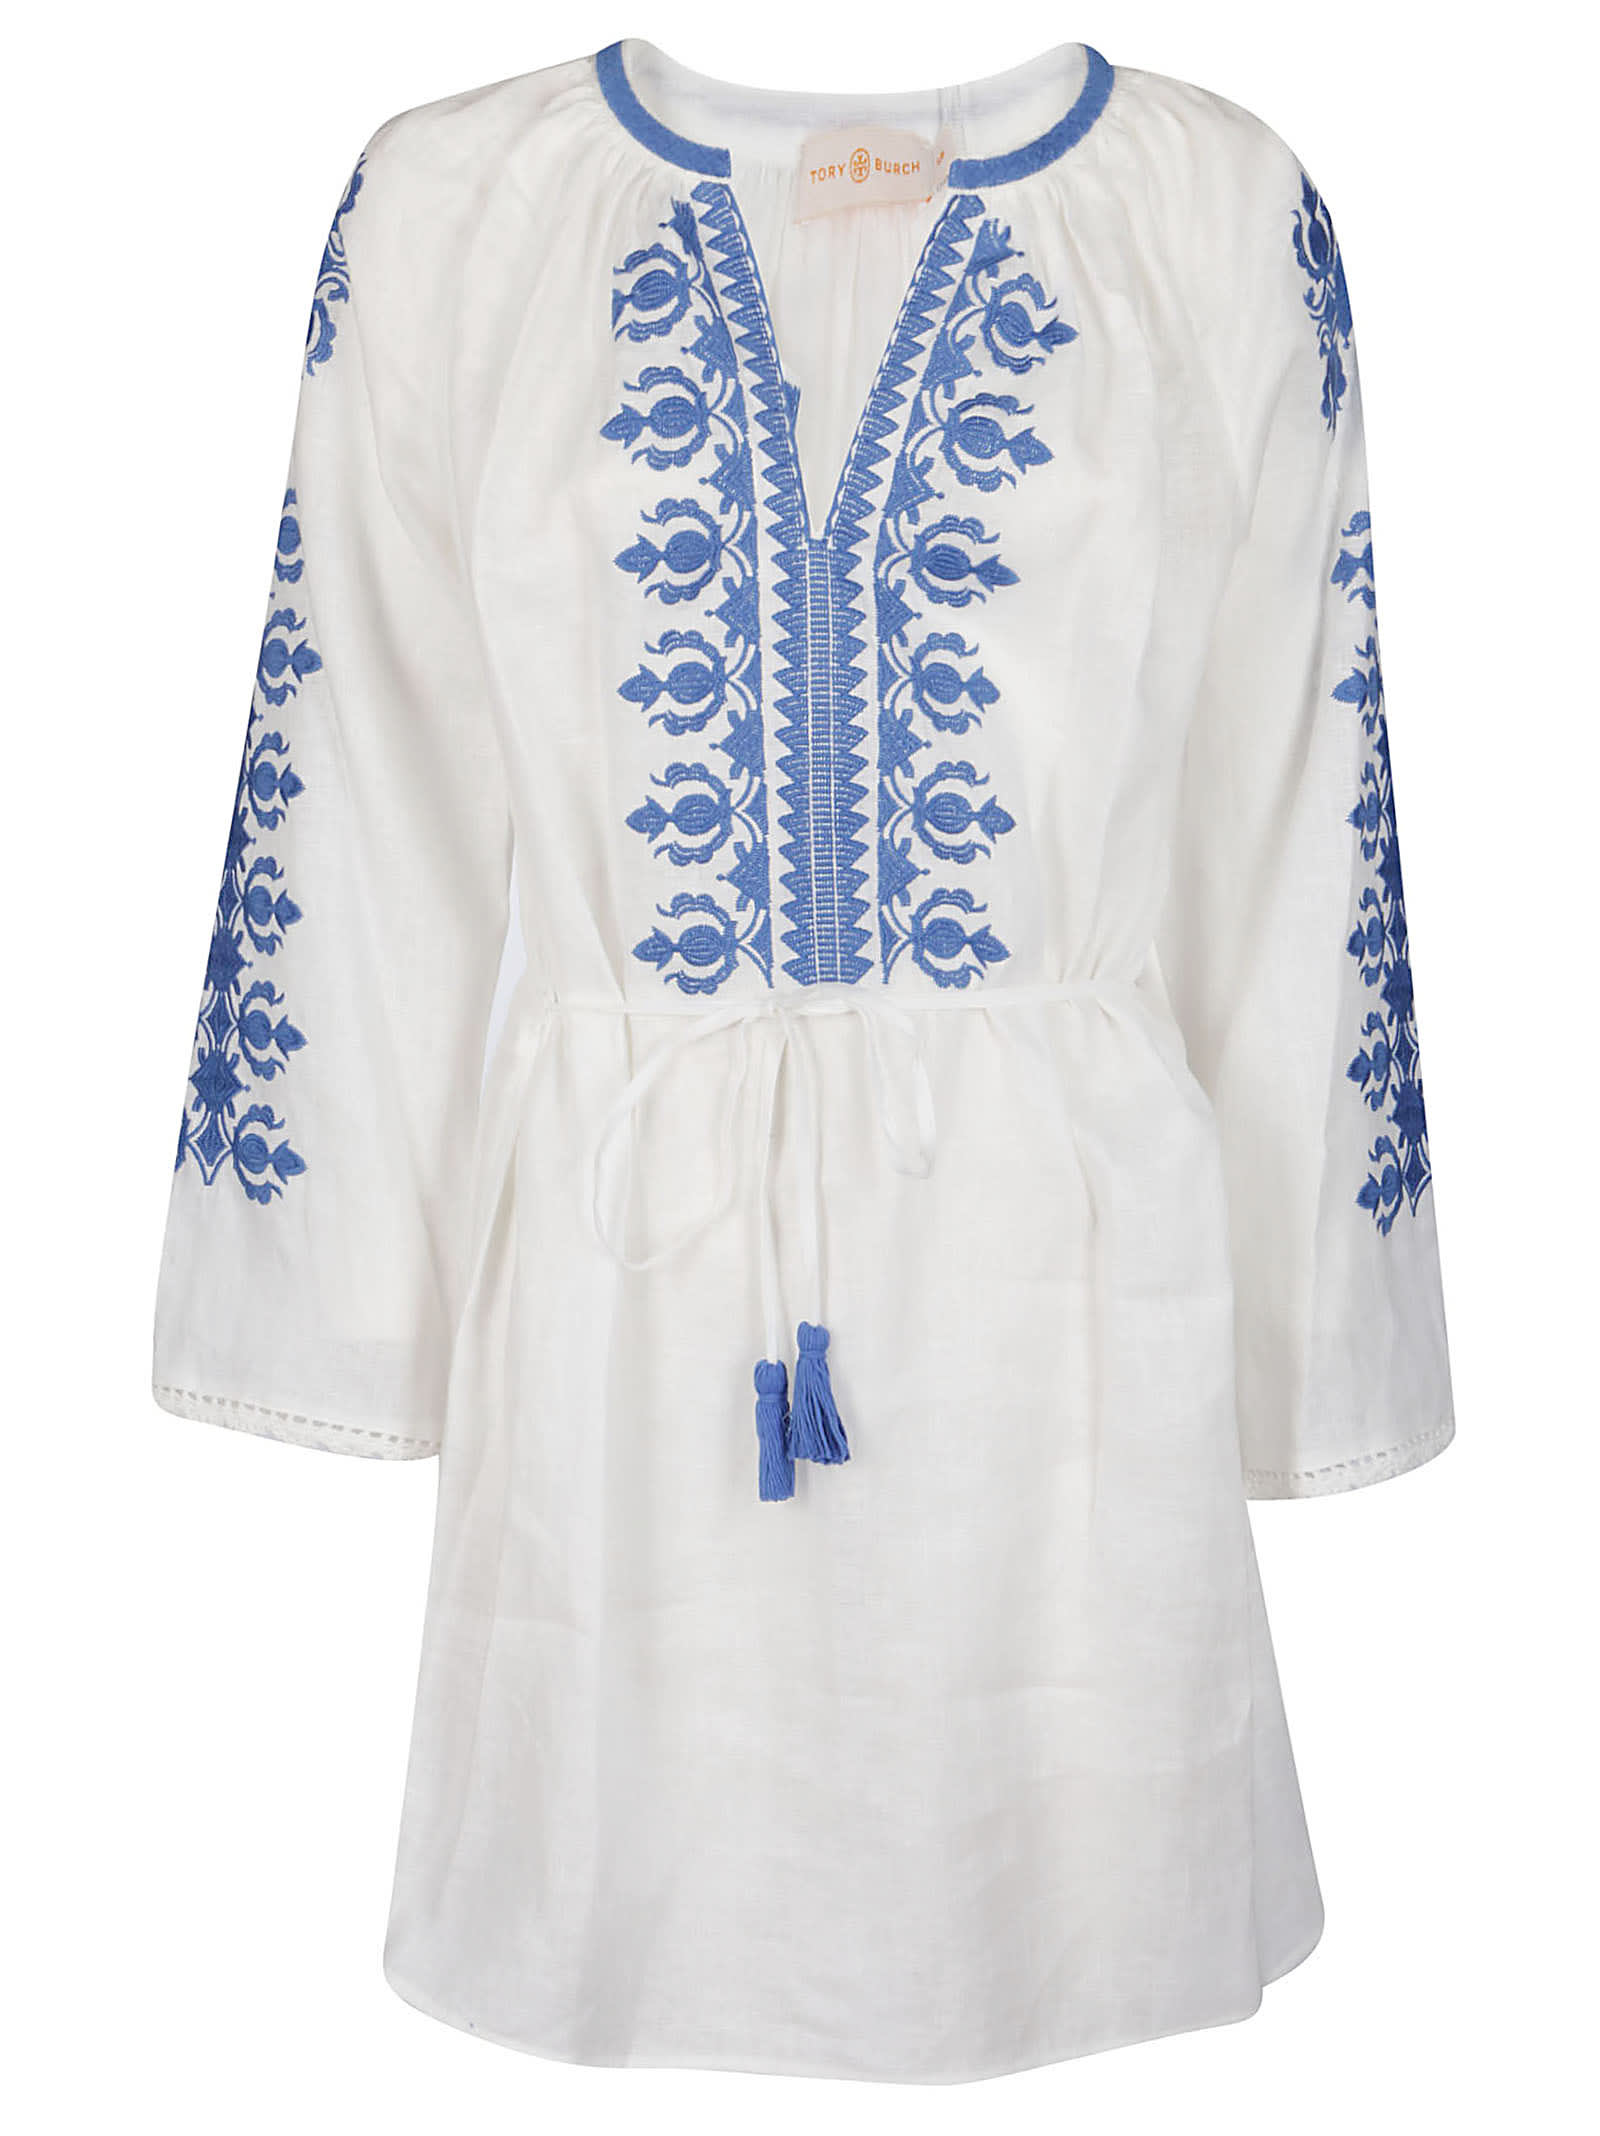 Buy Tory Burch Tassel-detail Embroidered Mini Dress online, shop Tory Burch with free shipping